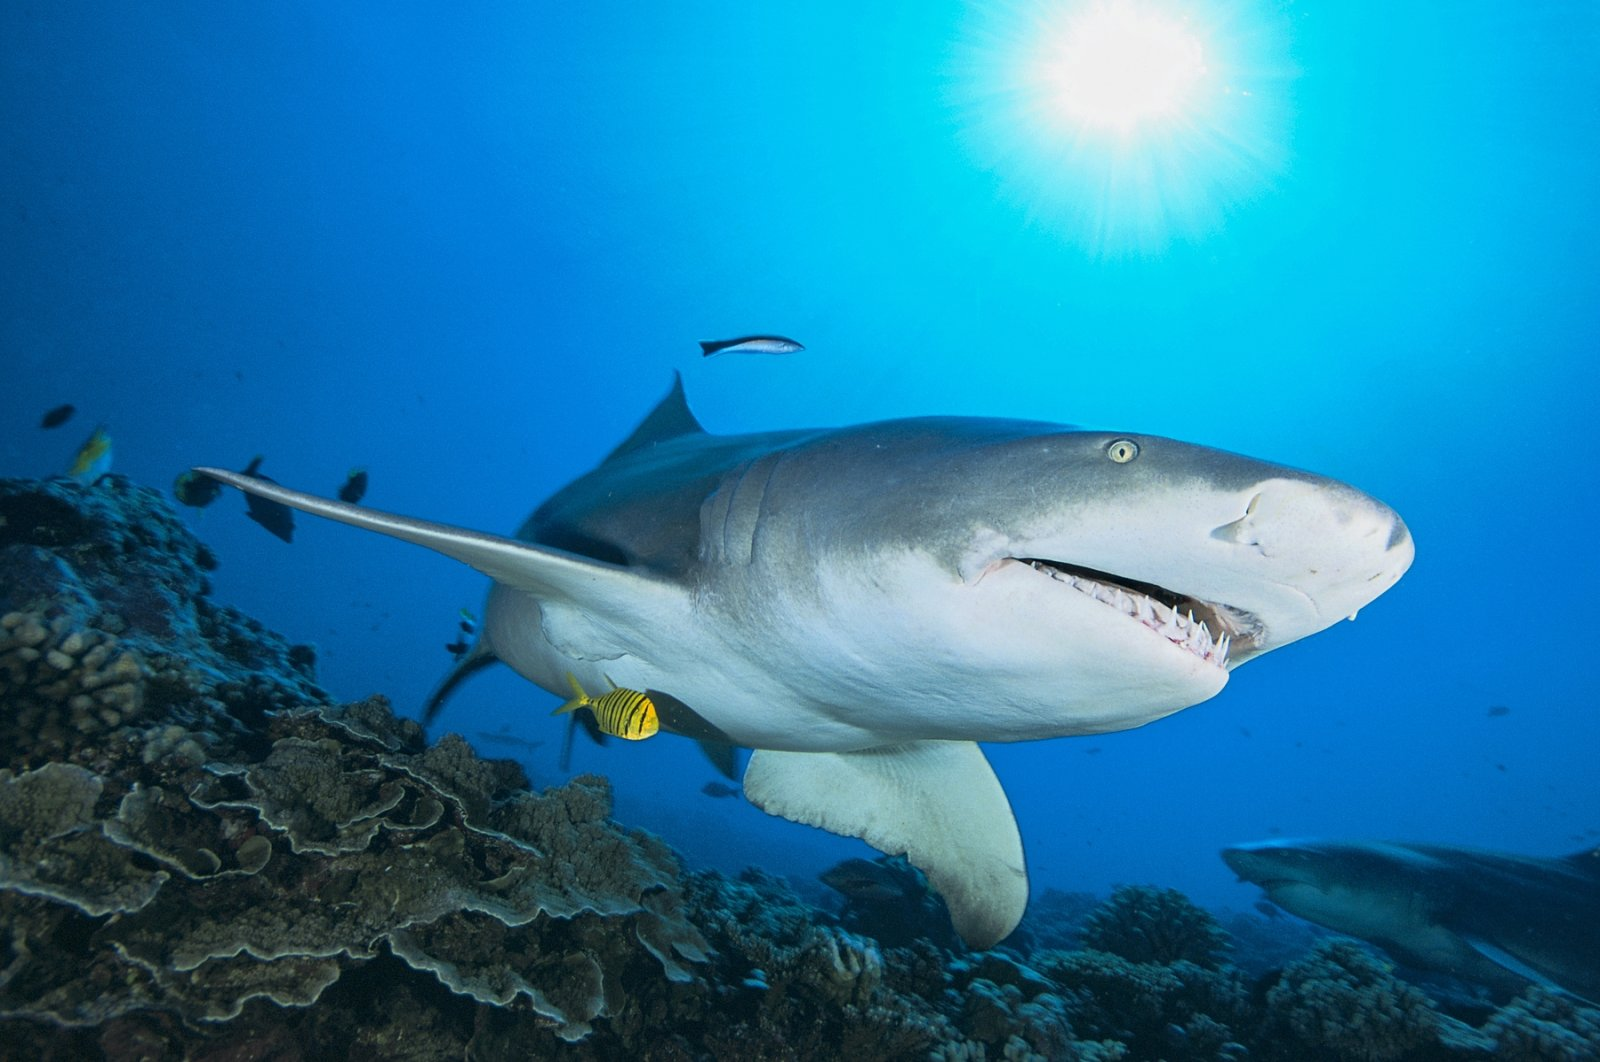 The sicklefin lemon shark, also called the sharptooth lemon shark, has a robust, stocky body and a short, broad head. Like the prehistoric Hoffman's Dragon Shark, this species also favors shallows and lives in murky, still waters, it is most commonly found in bays, estuaries, and lagoons, and over sandy flats and outer reefs, Moorea, French Polynesia, Pacific Ocean, Jan. 21, 2021. (Getty Images)